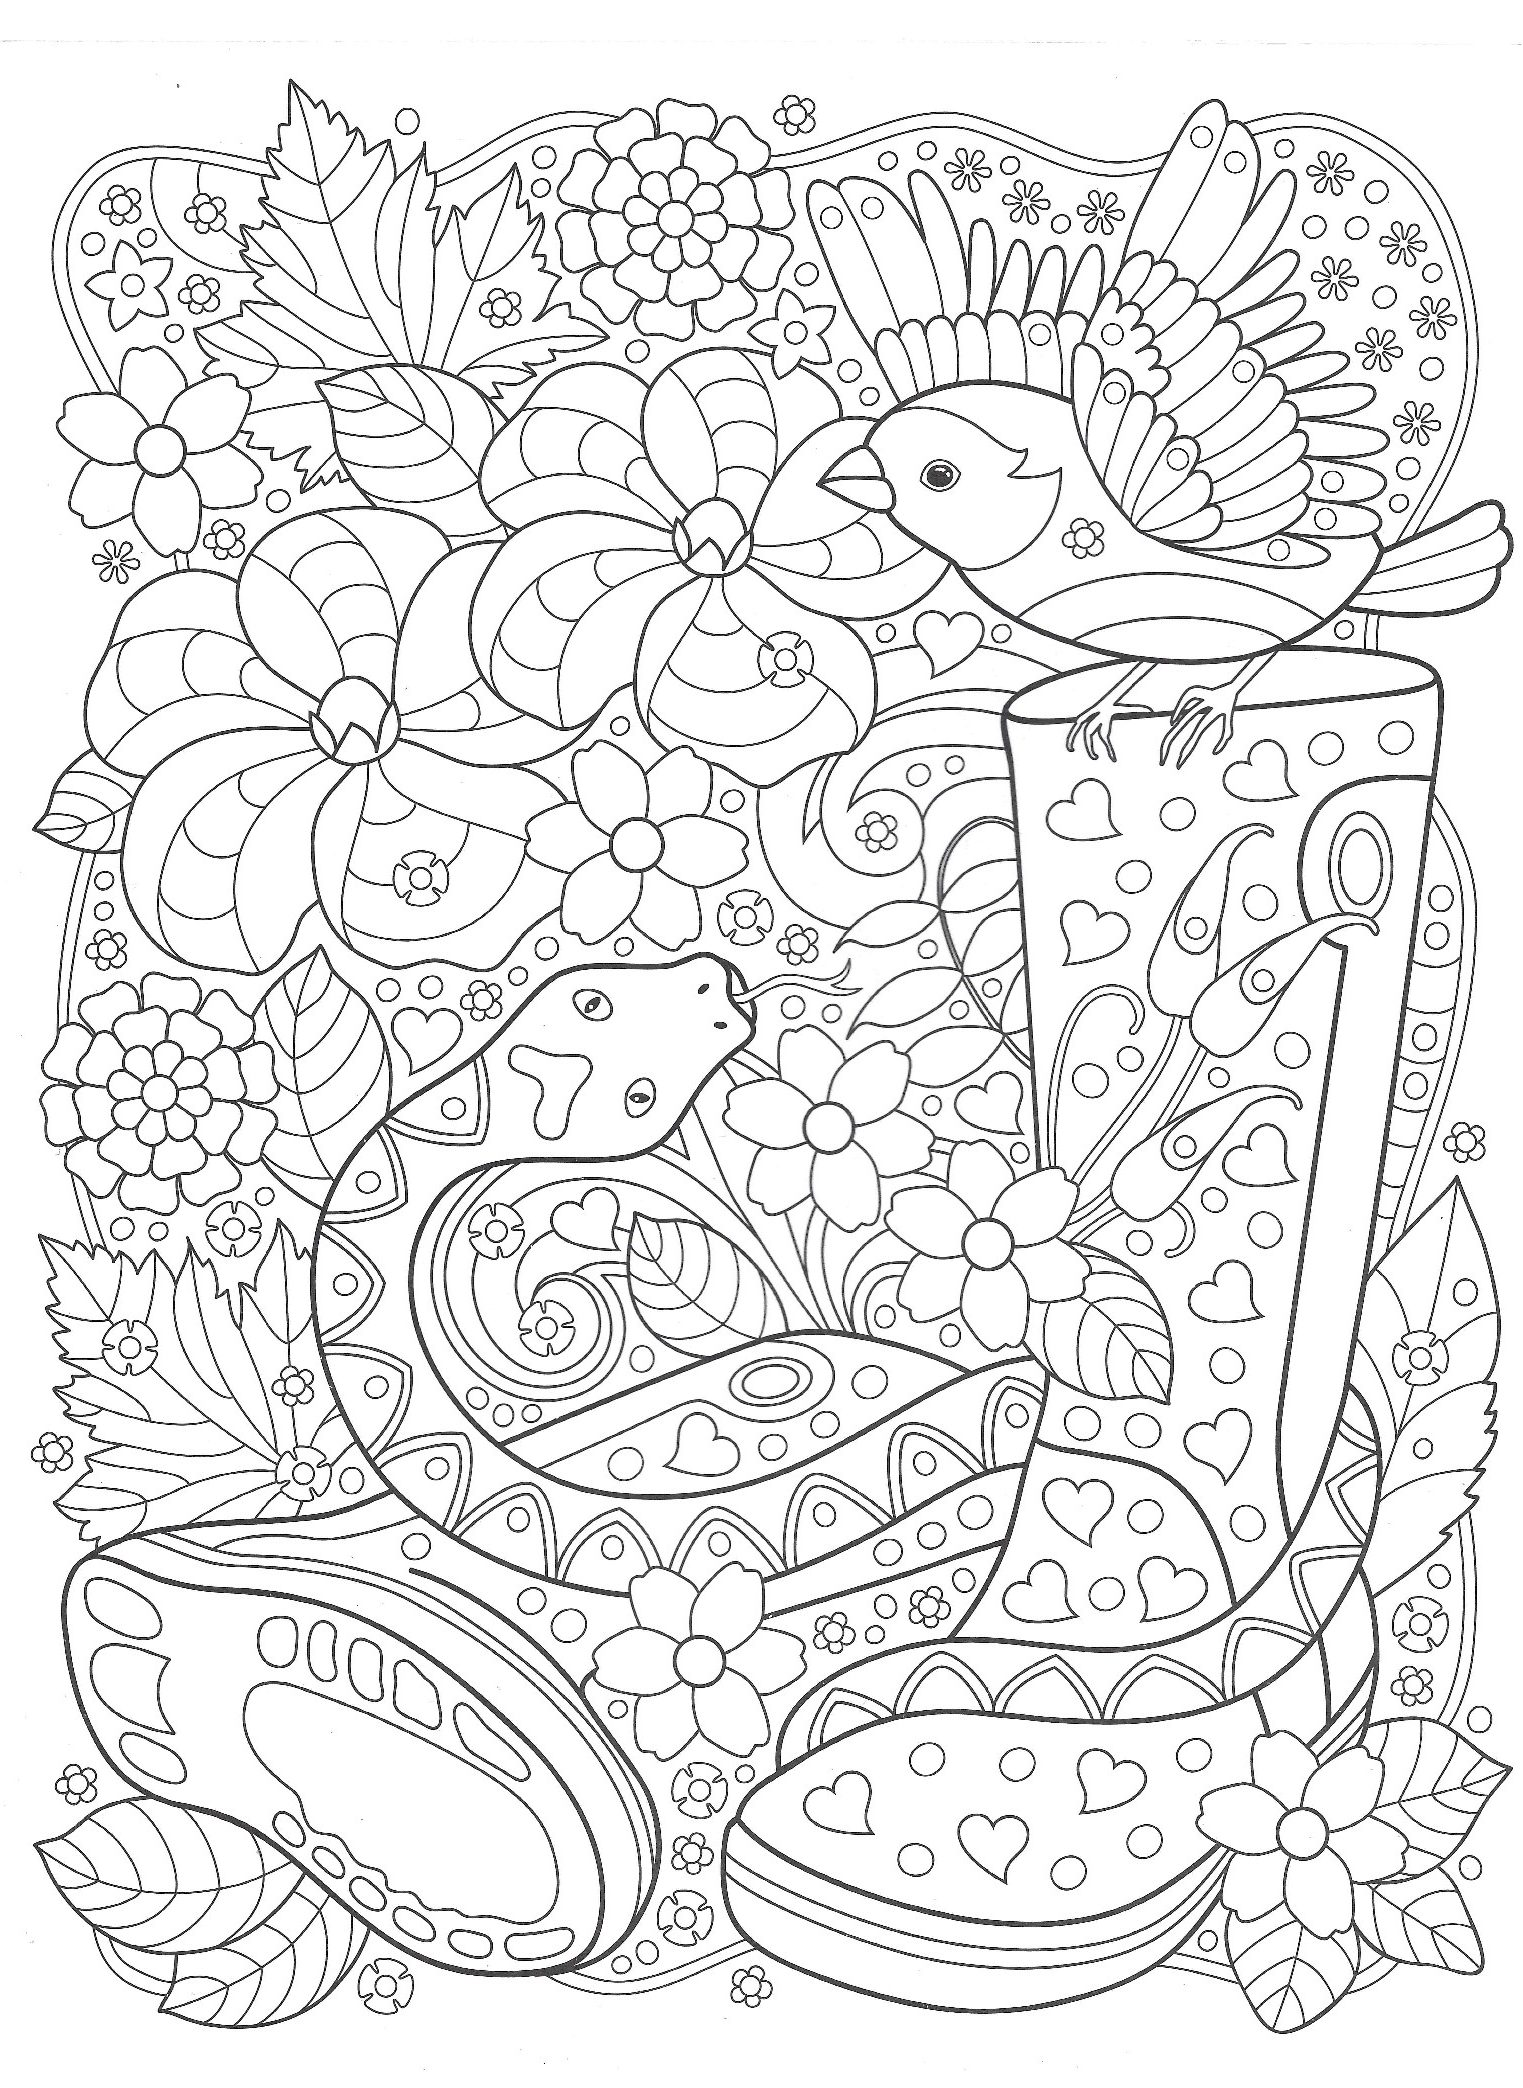 The bird and the snake in the garden